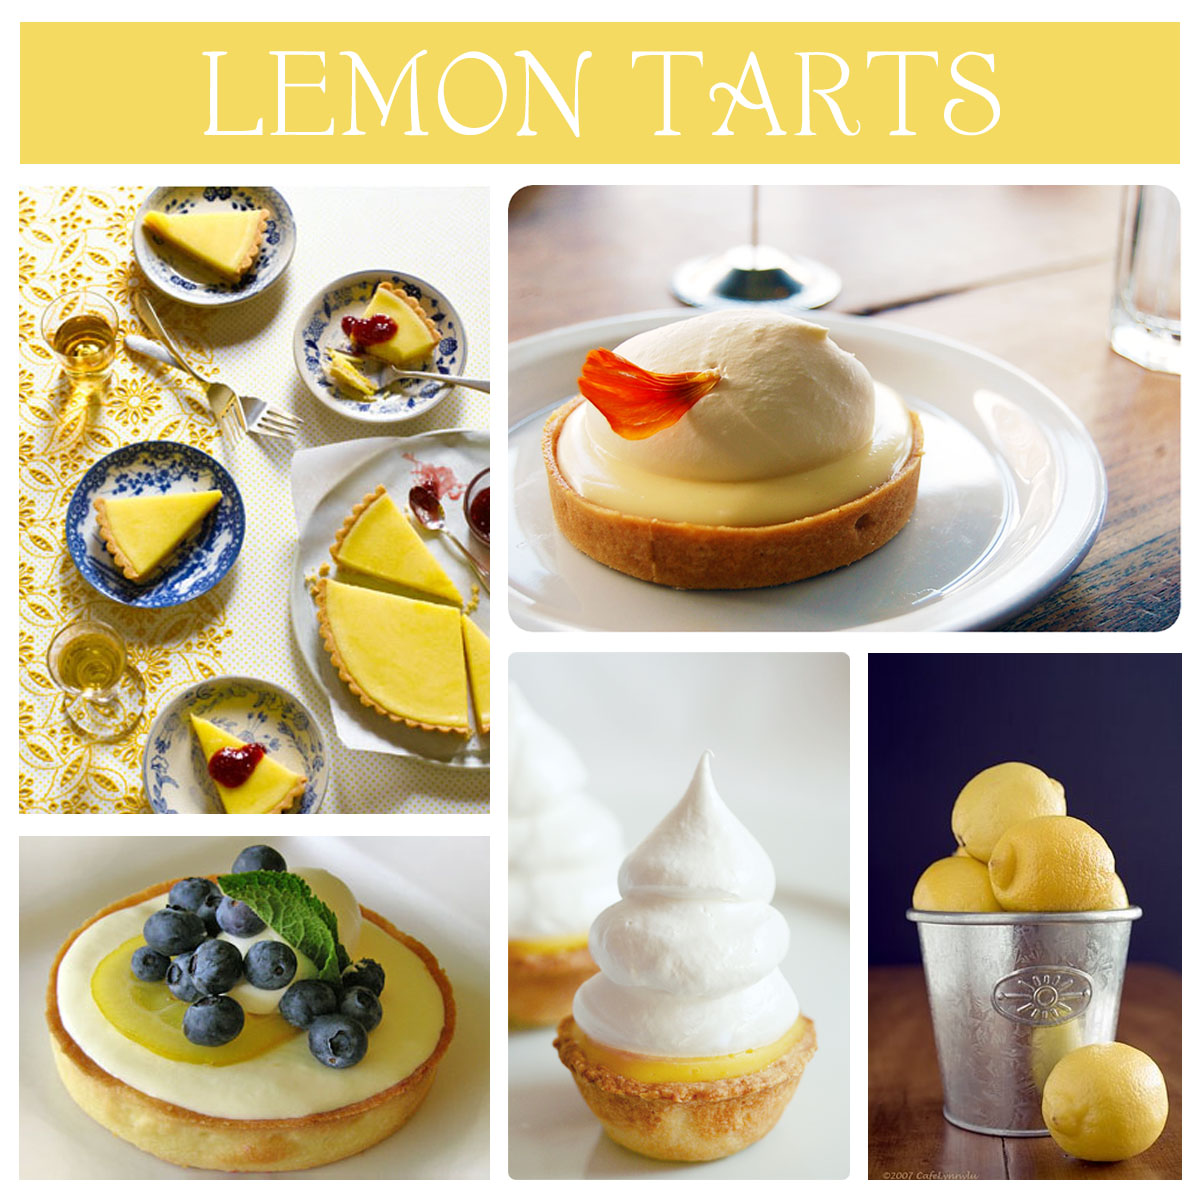 AM NOT A DIARY: Leave Your Lemon Tarts In My Oven